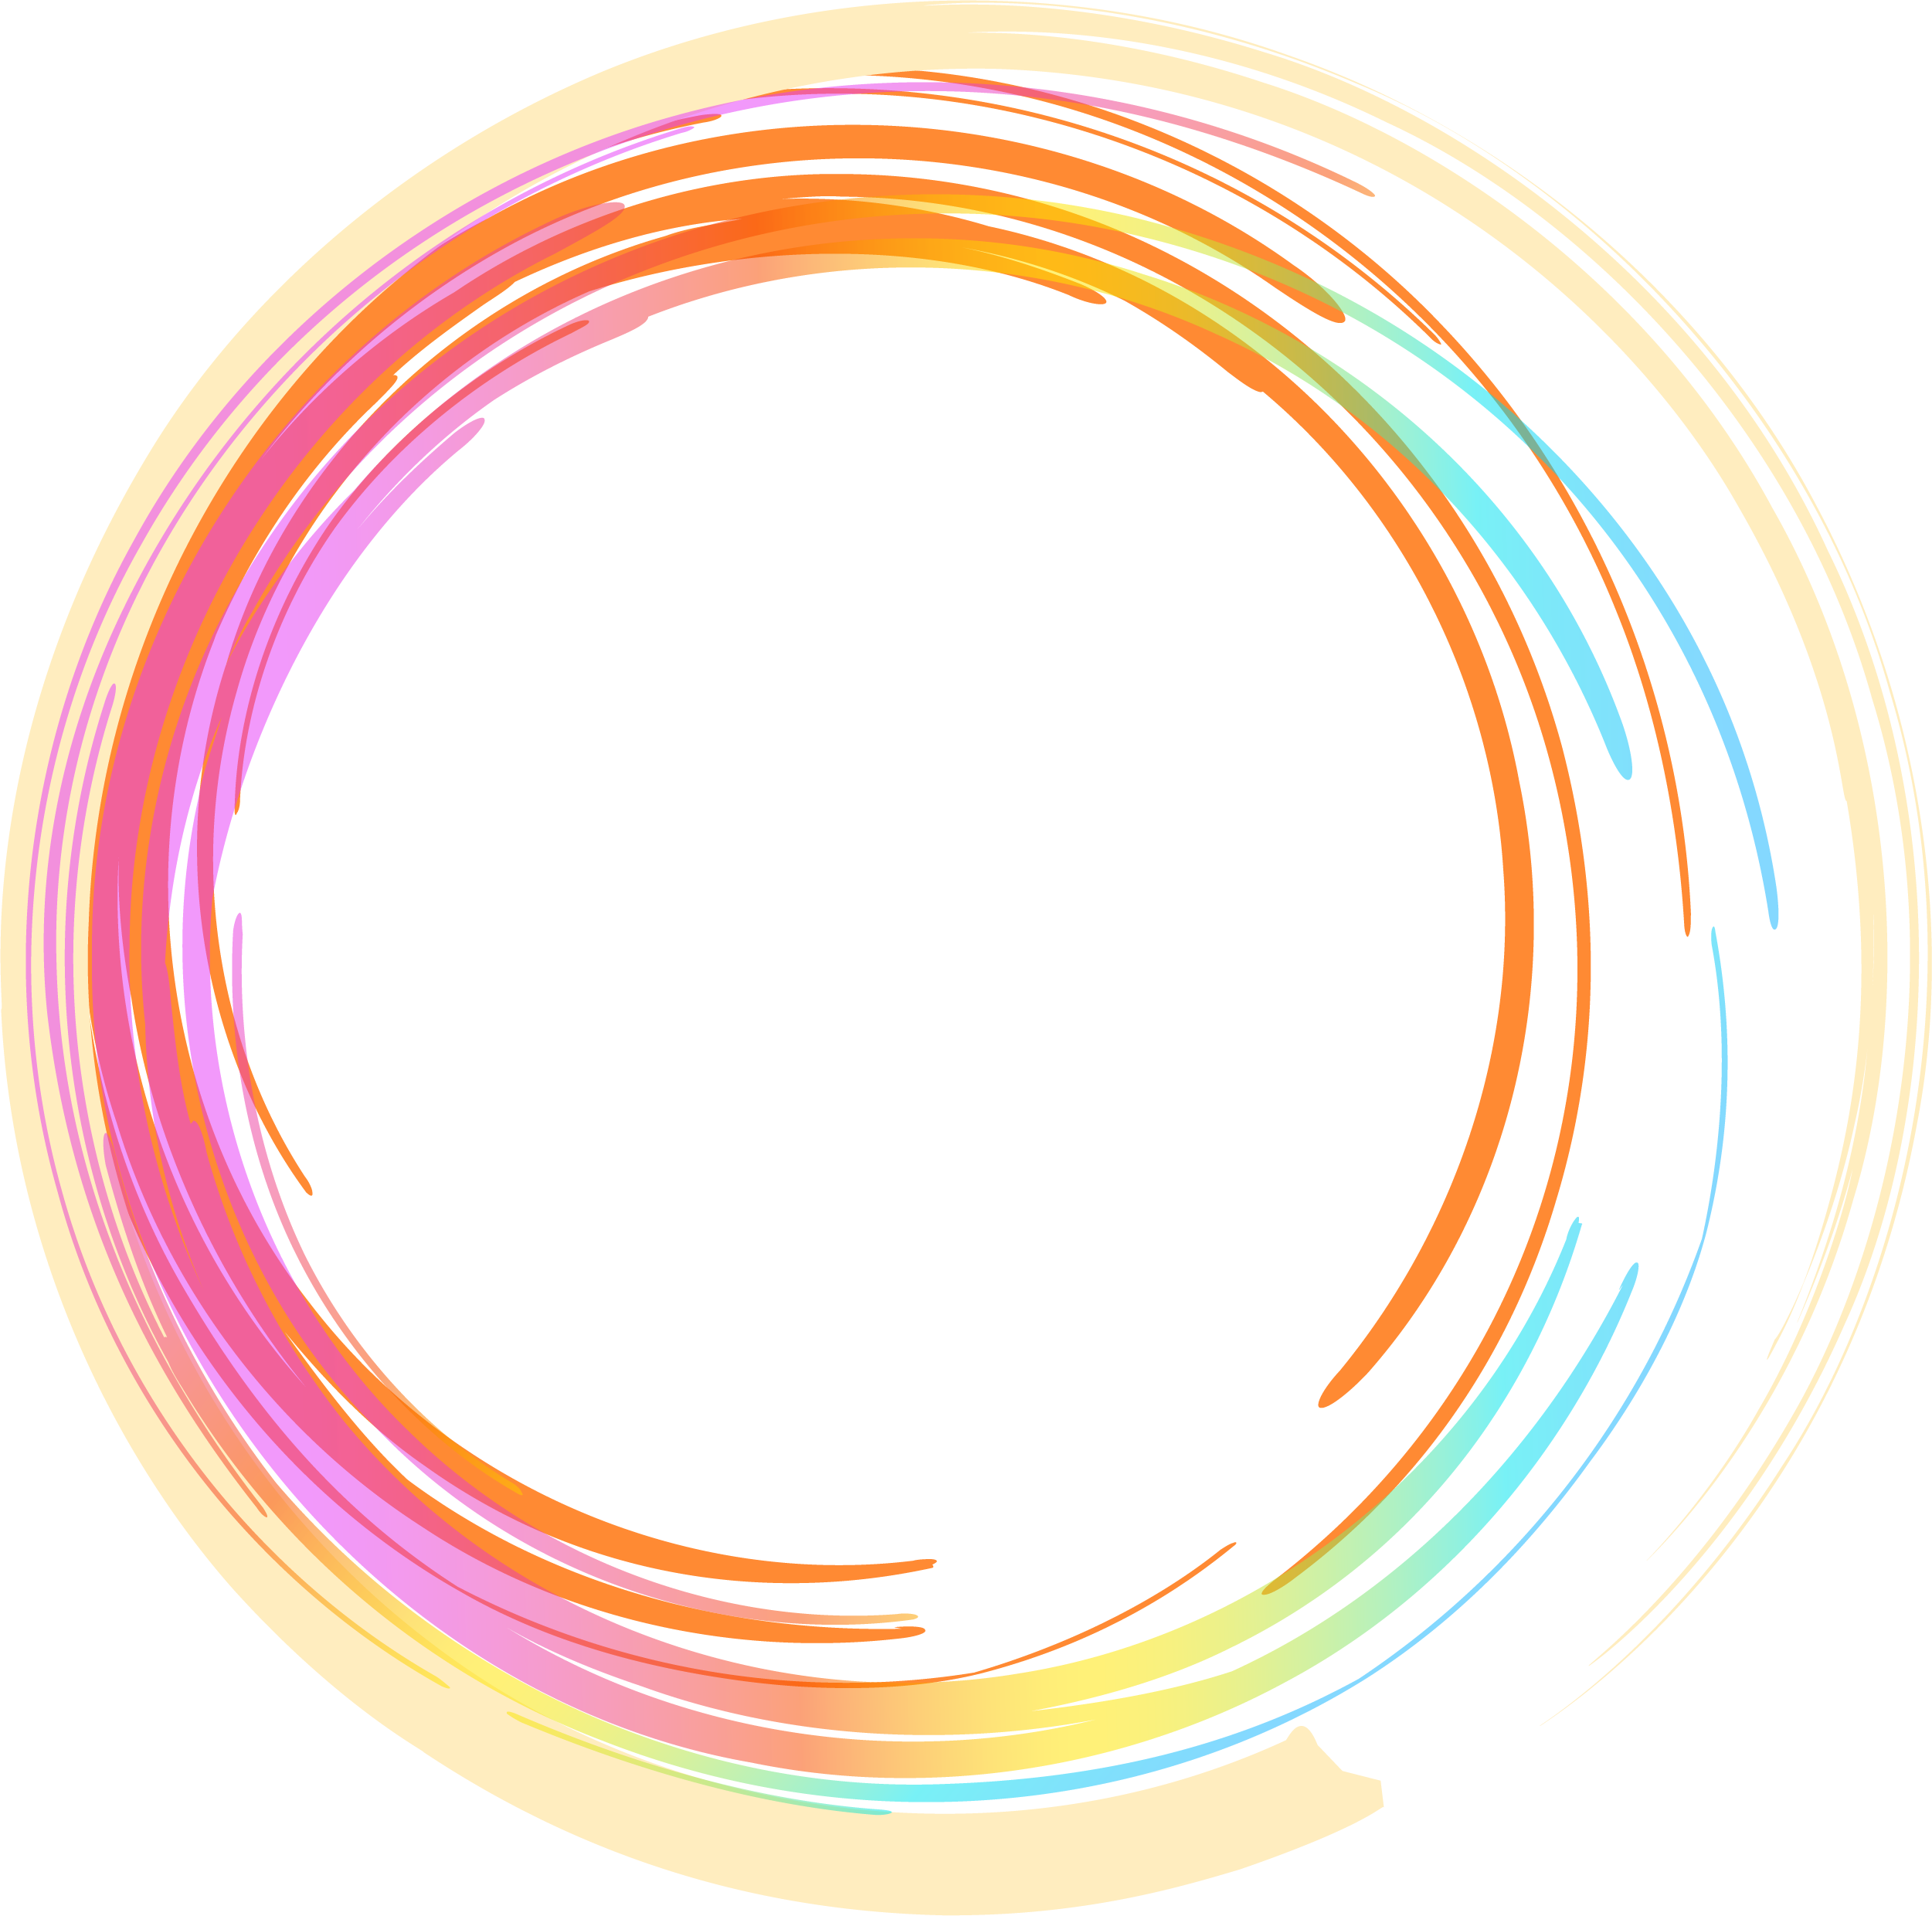 Painted circle png. Gratis hand colorful transprent